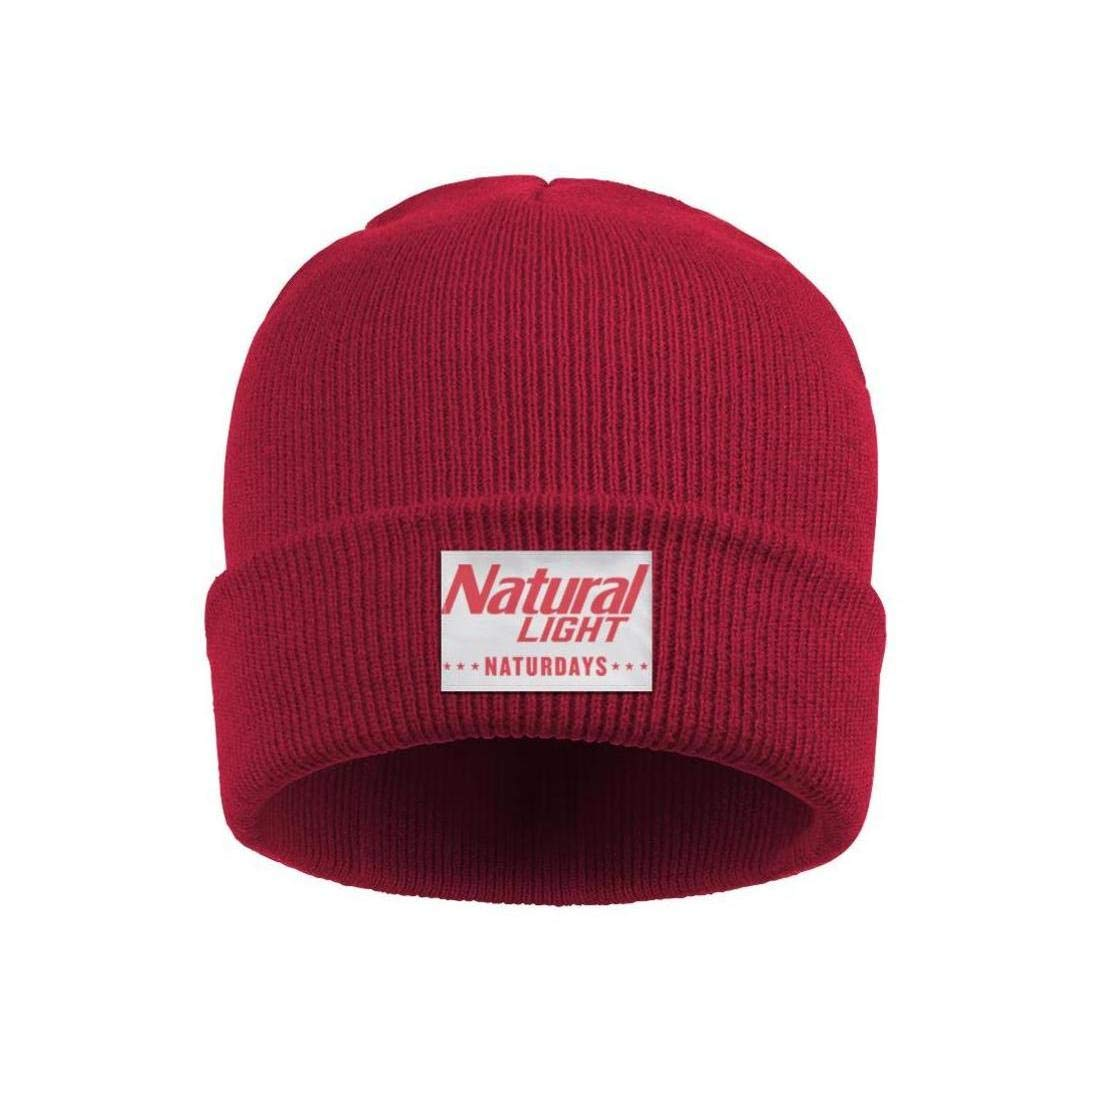 sknkdhgiJ Headwear for Mens Womens Fashion Solid Color Natural-Light-Beer-Naturdays Knitted Hat